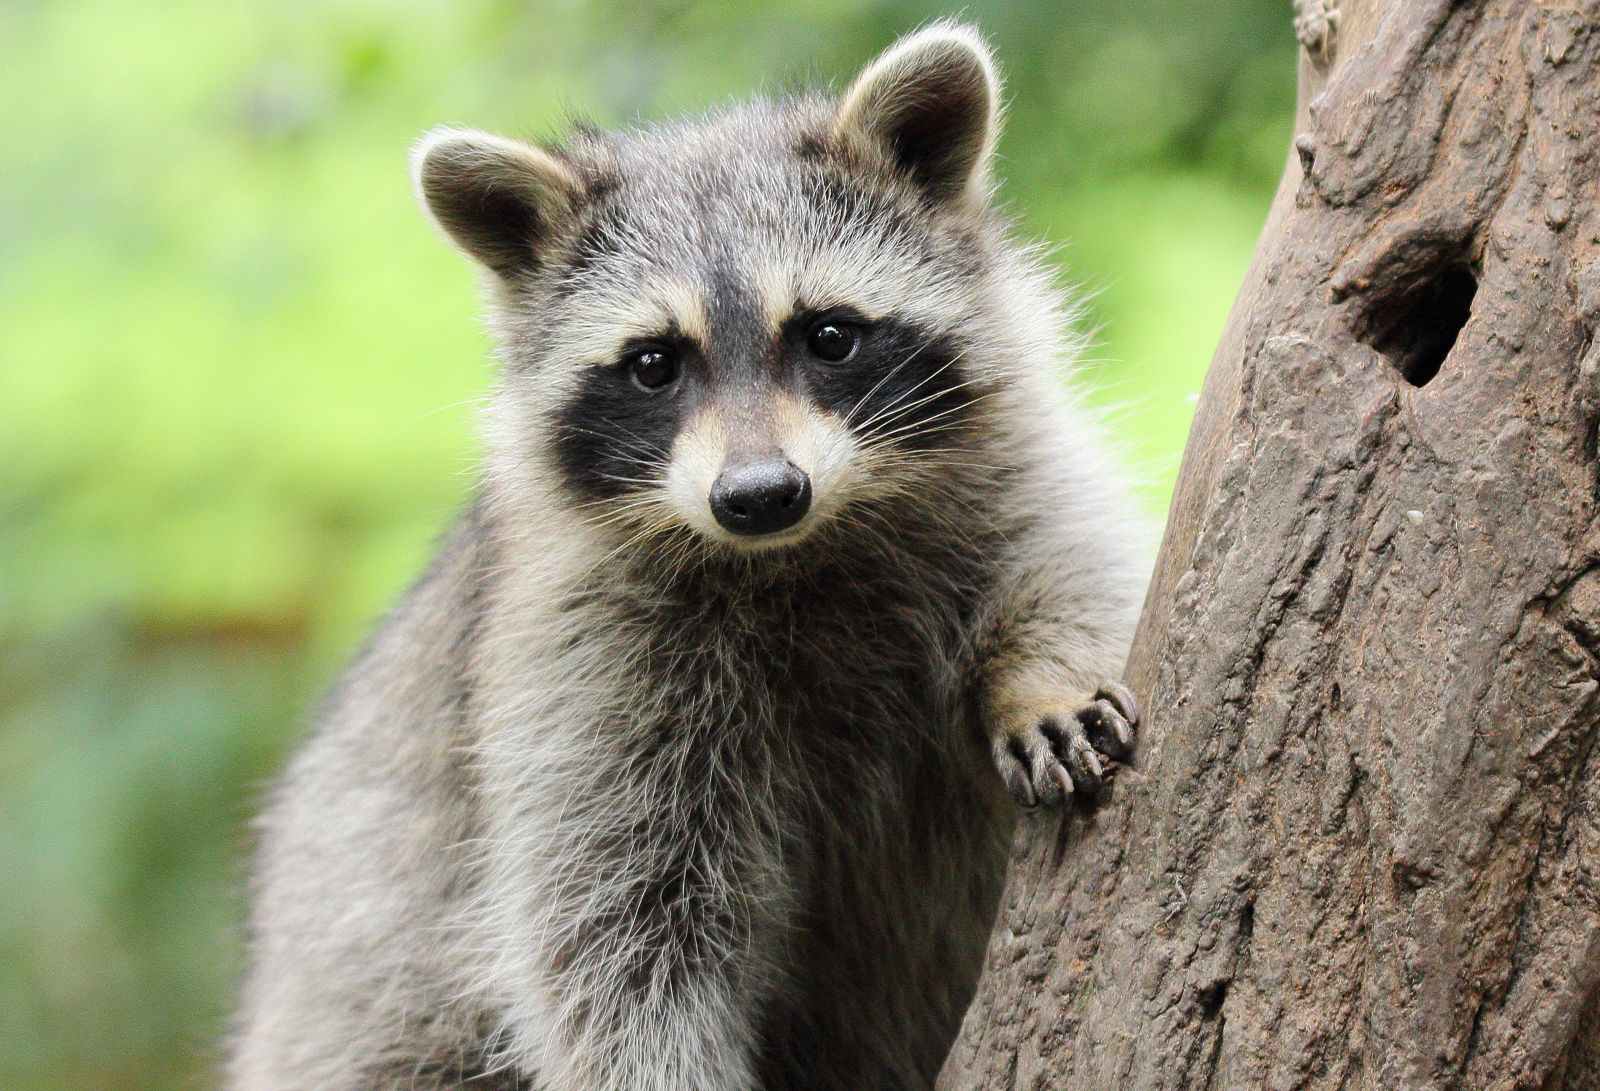 Raccoon in tree (IStock photo credit:amadeusamse)